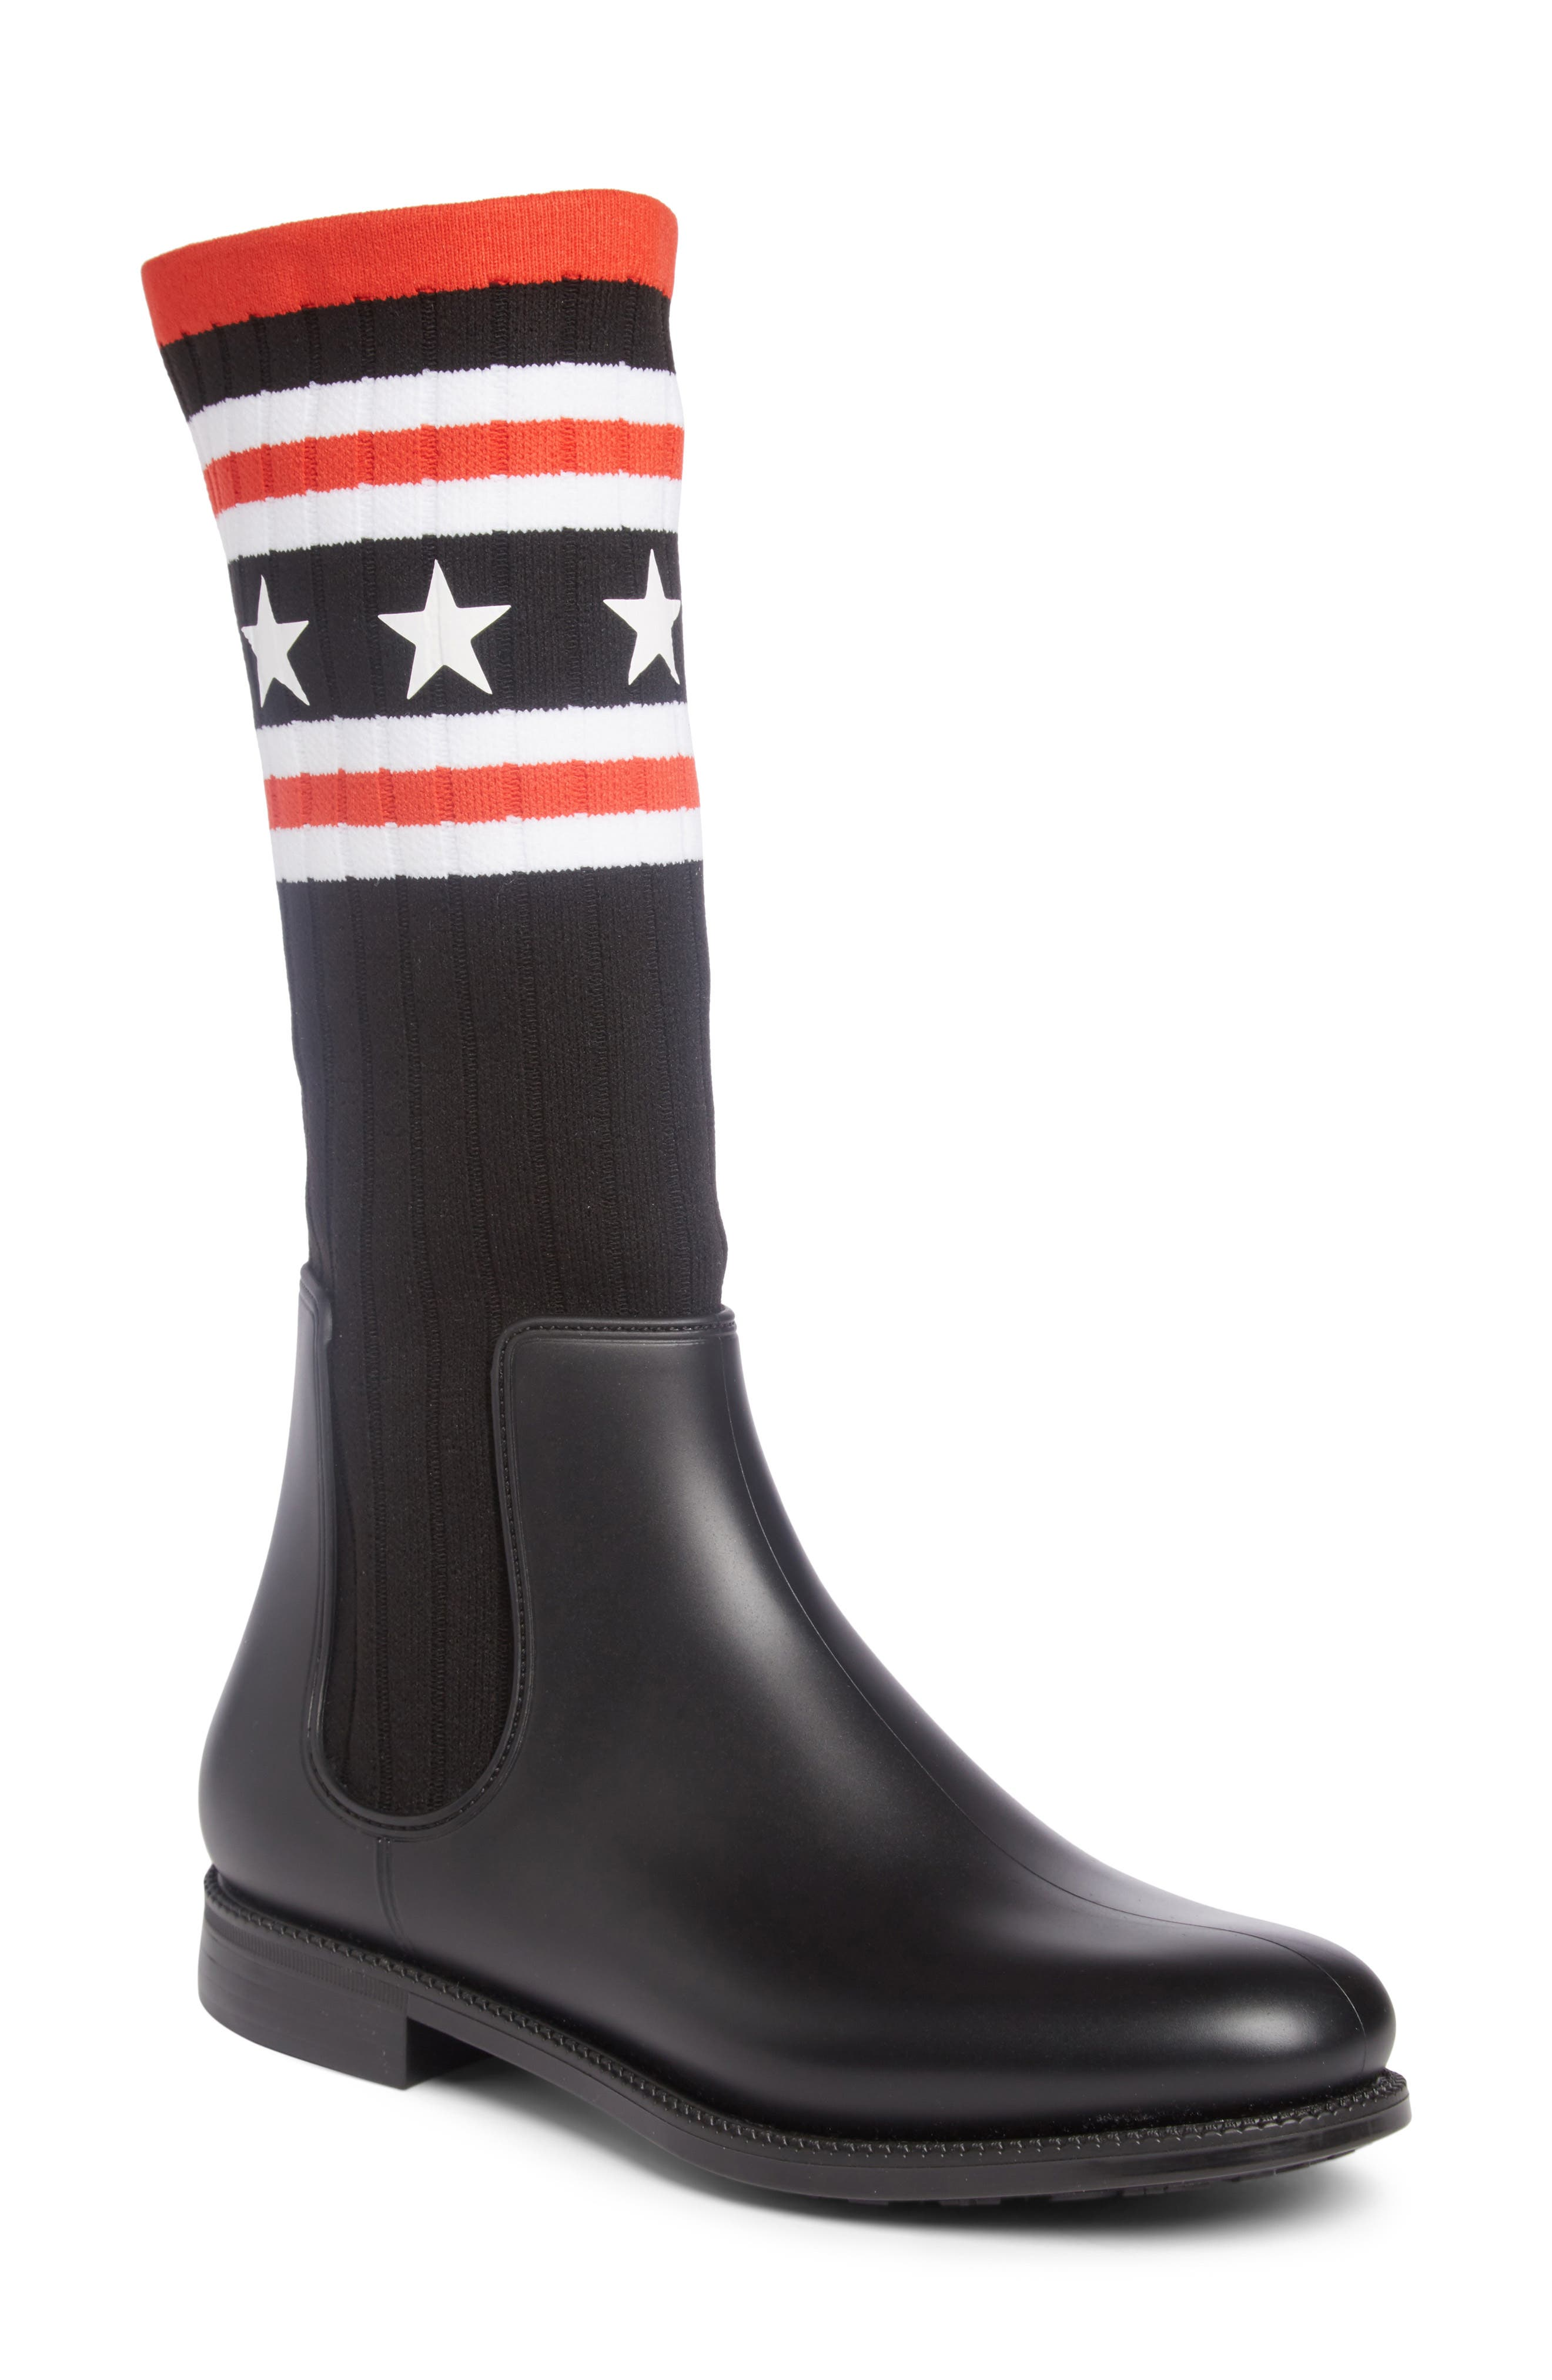 Main Image - Givenchy Storm Chelsea Sock Boot (Women)